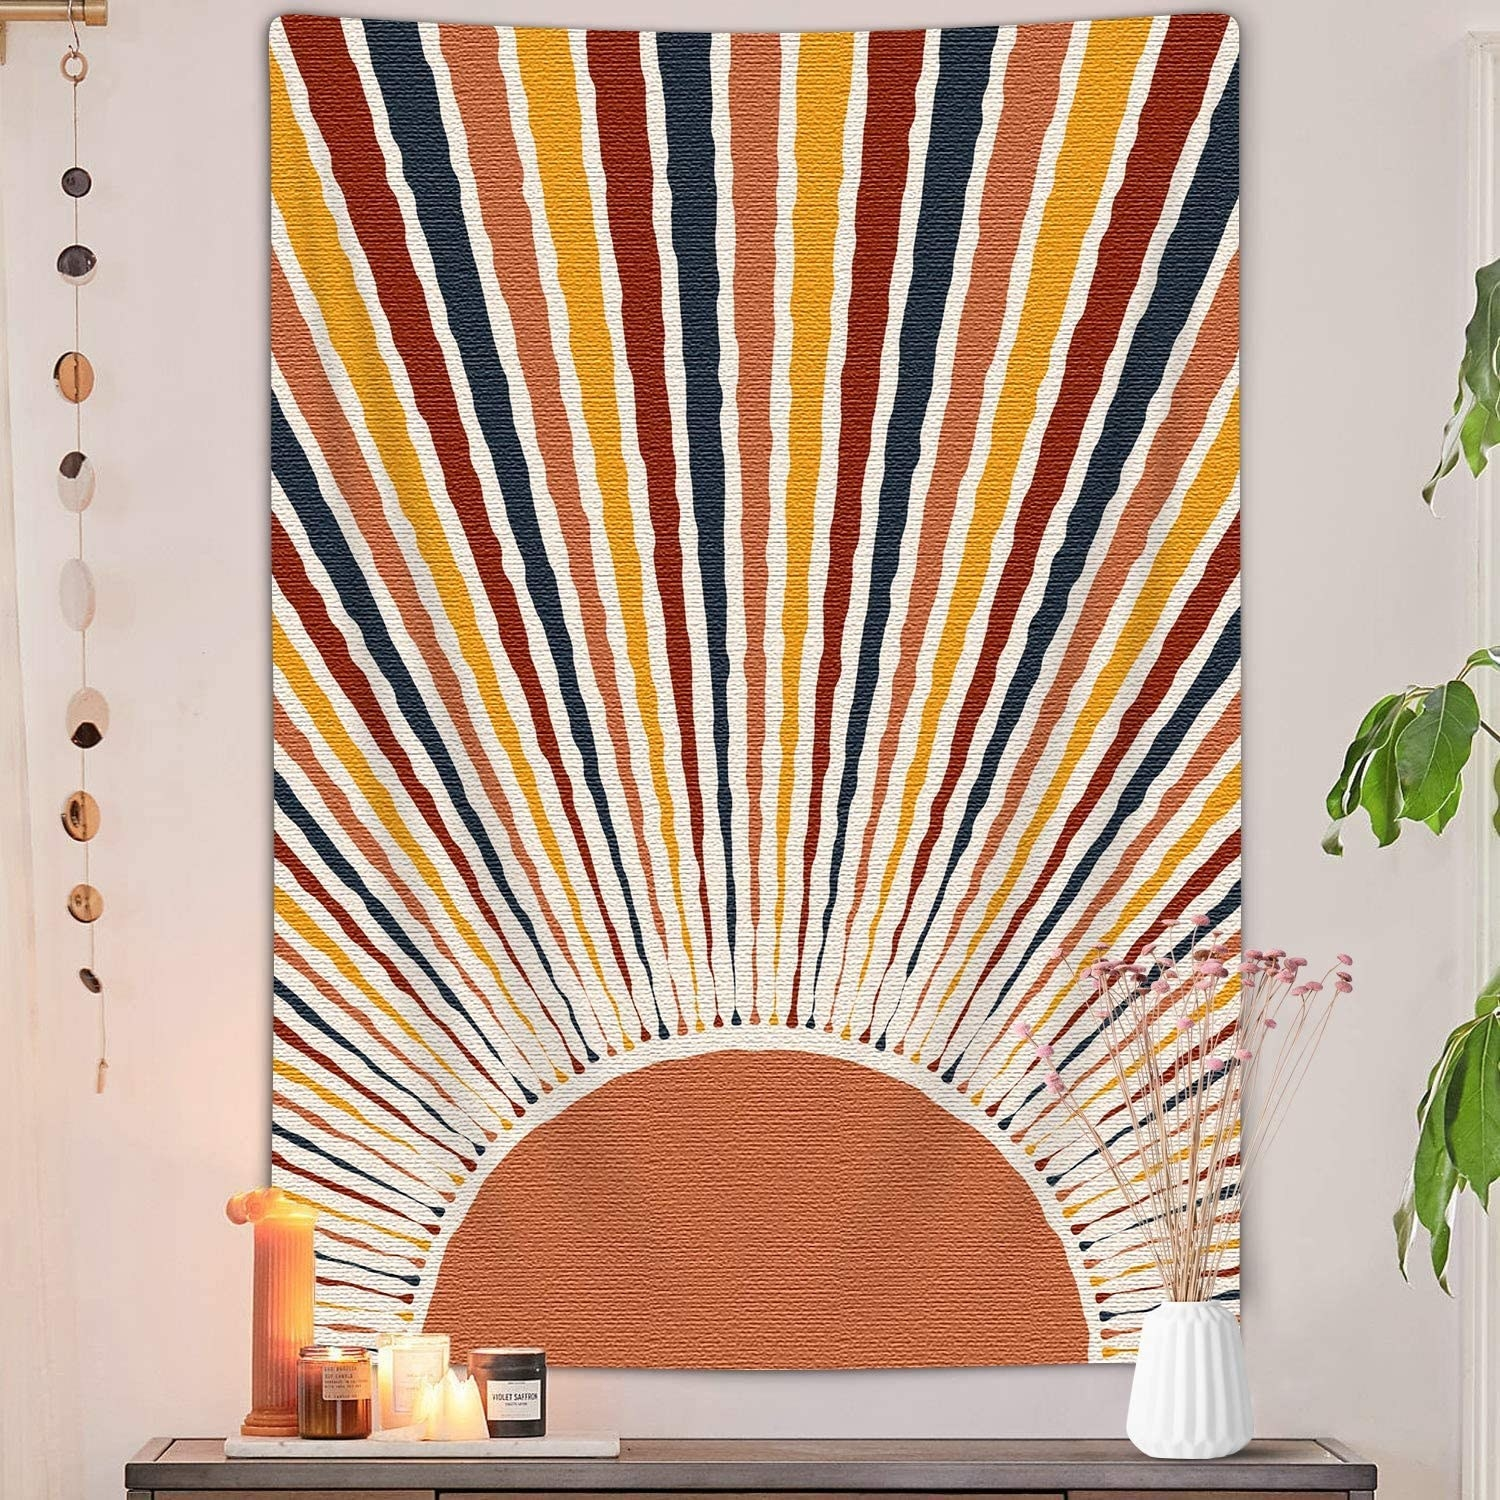 a tapestry hung on a wall with a sun and rays painted onto it